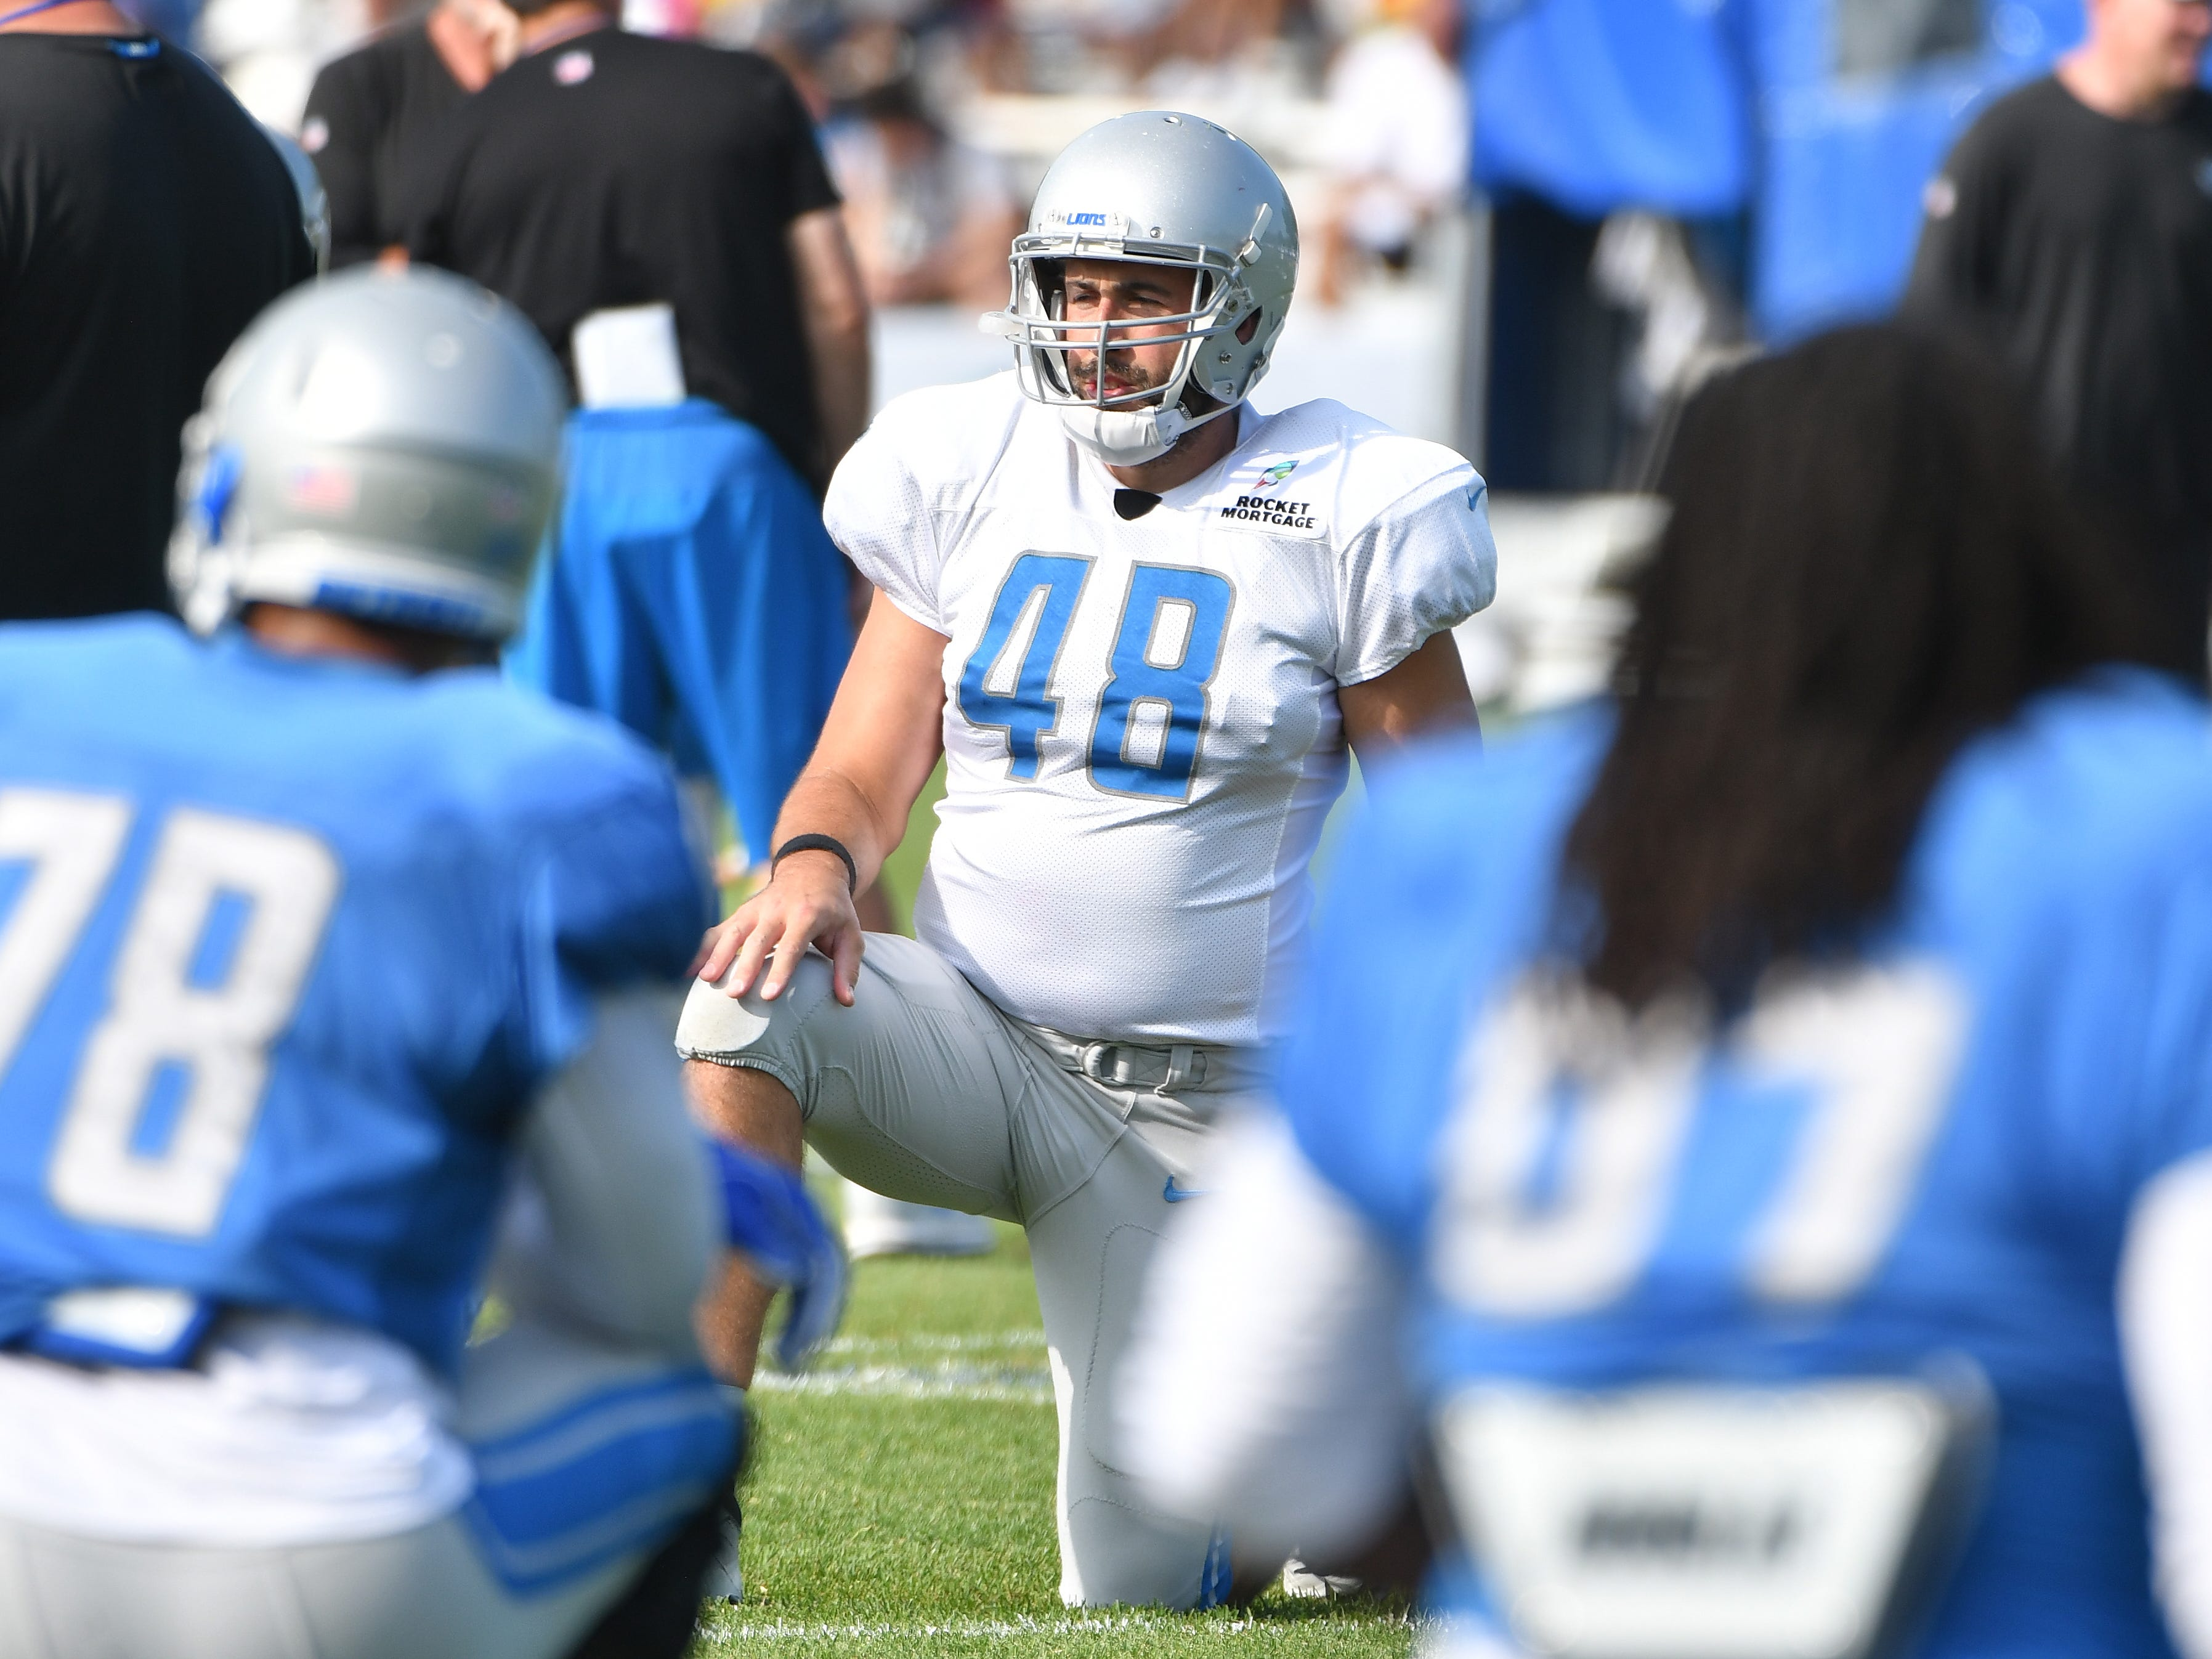 Lions long snapper Don Muhlbach stretches out at the start of practice.